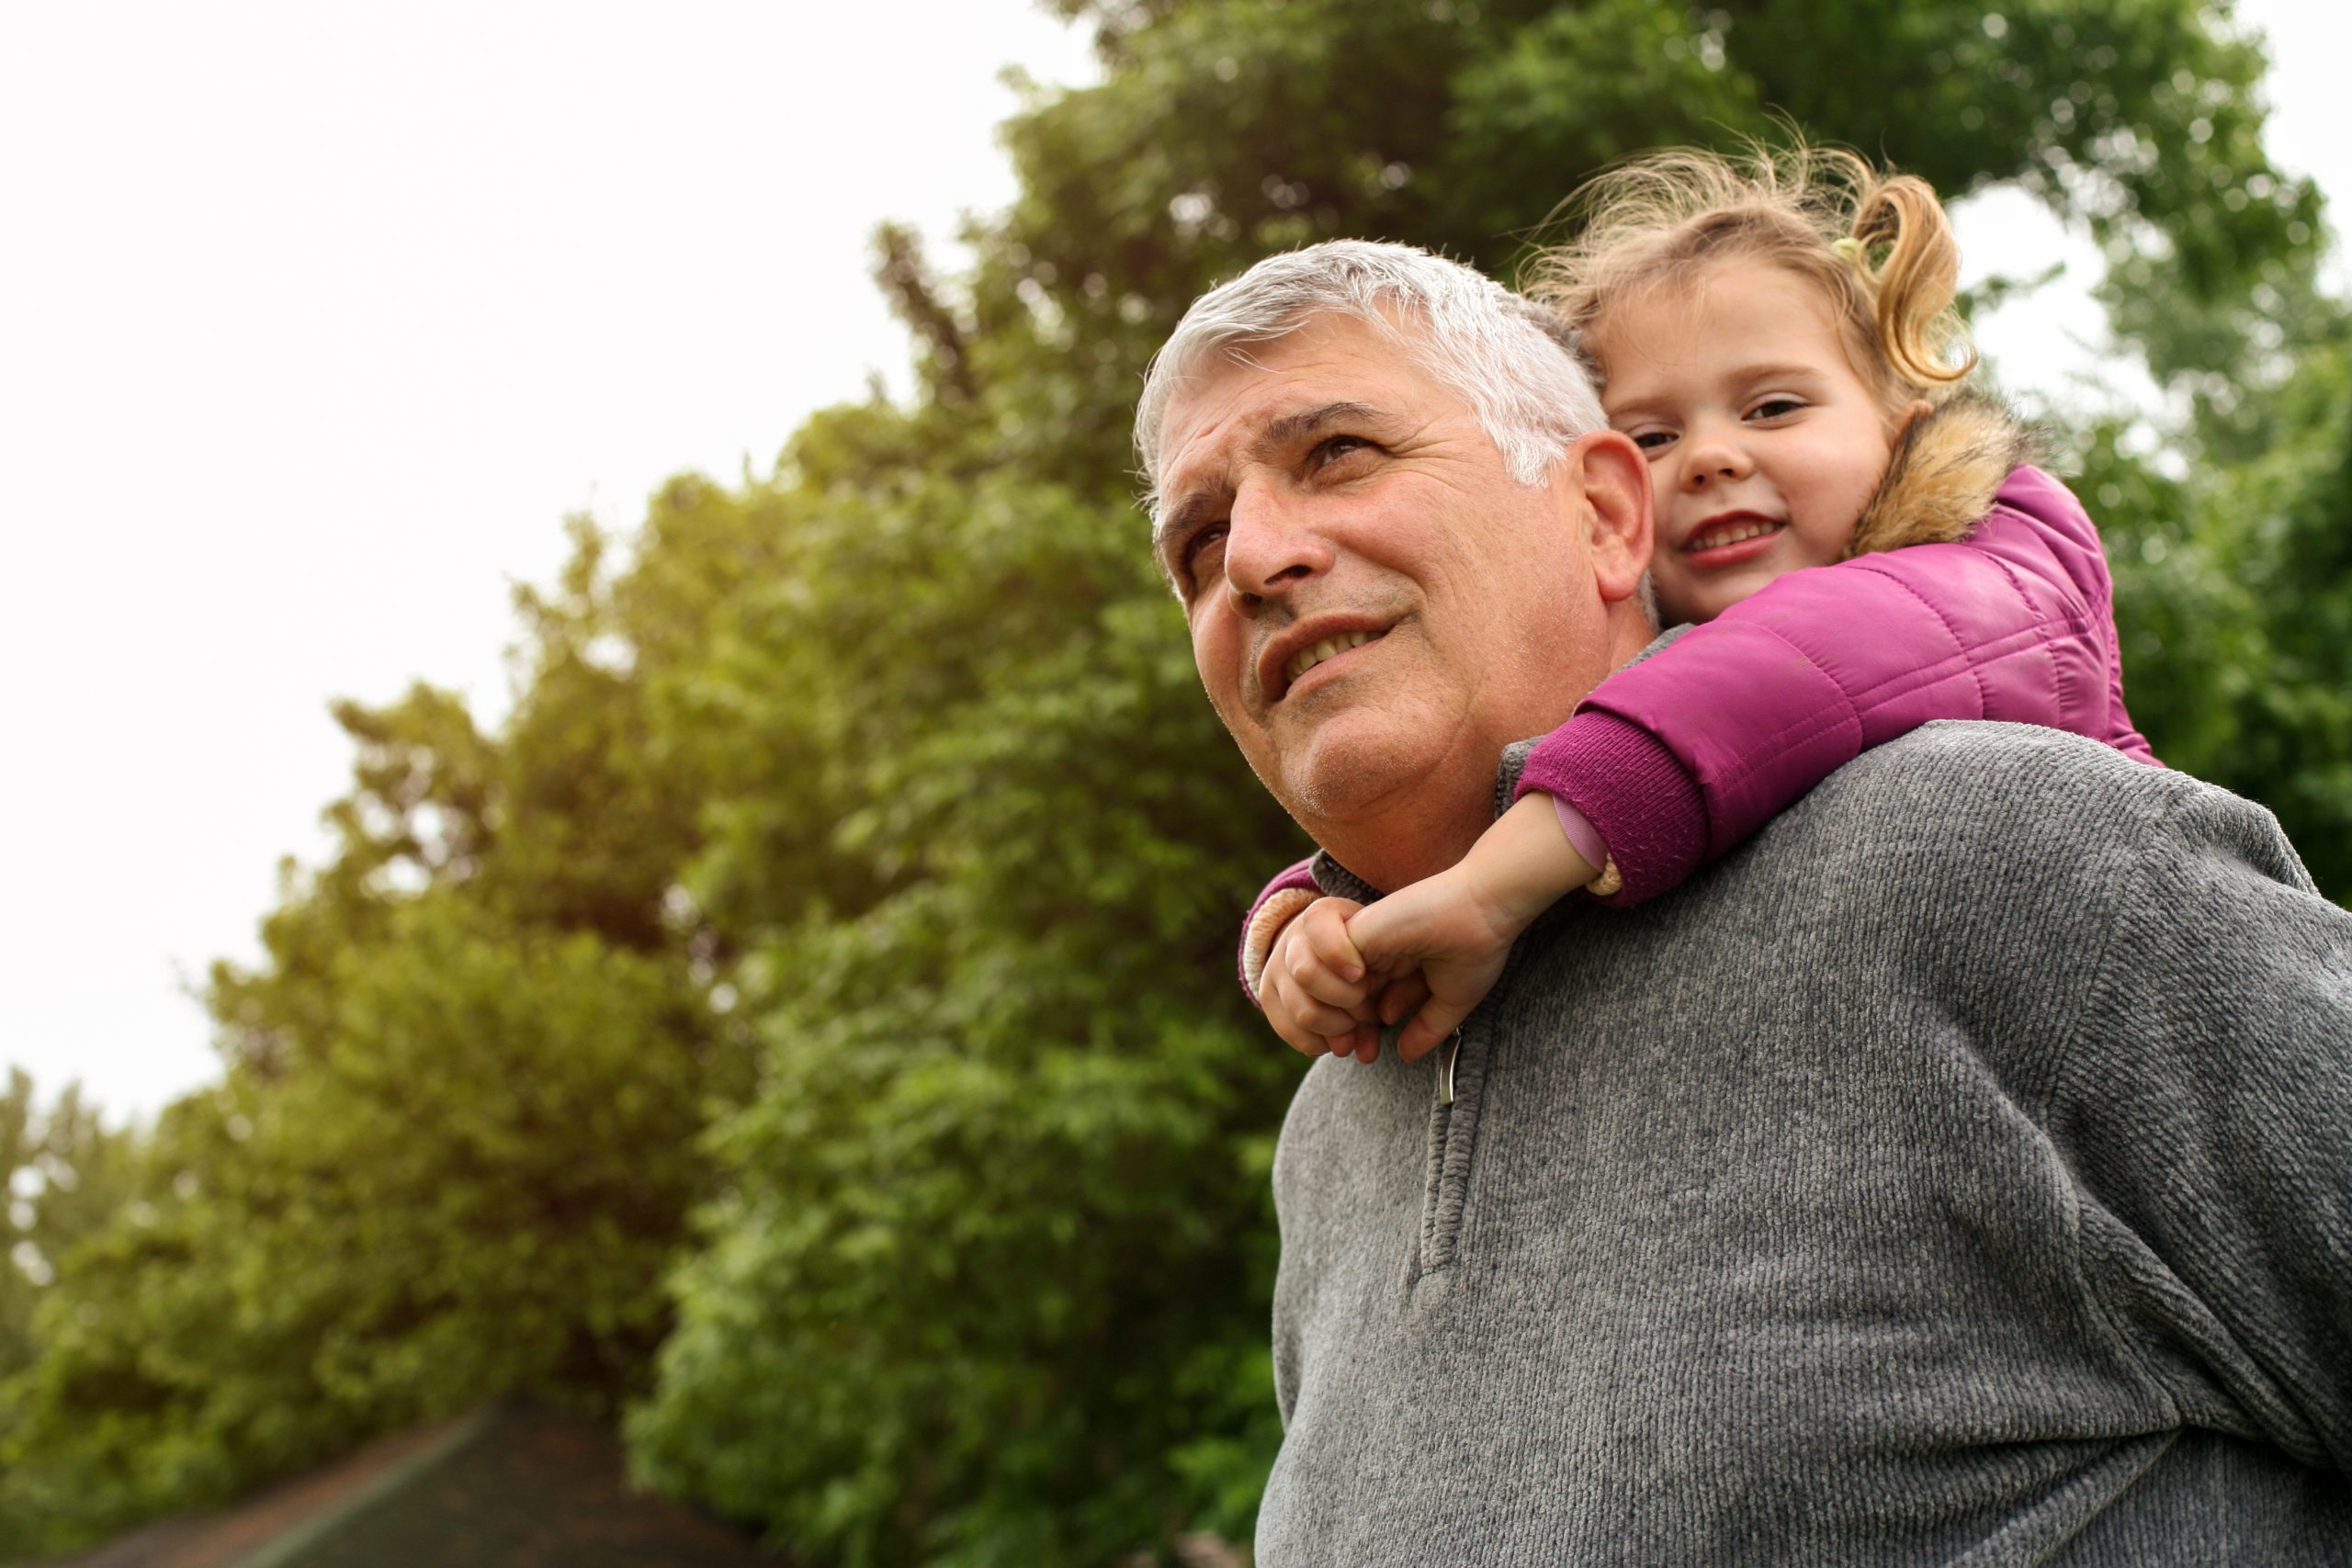 Grandfather with his granddaughter in the park. Little girl looking at camera.